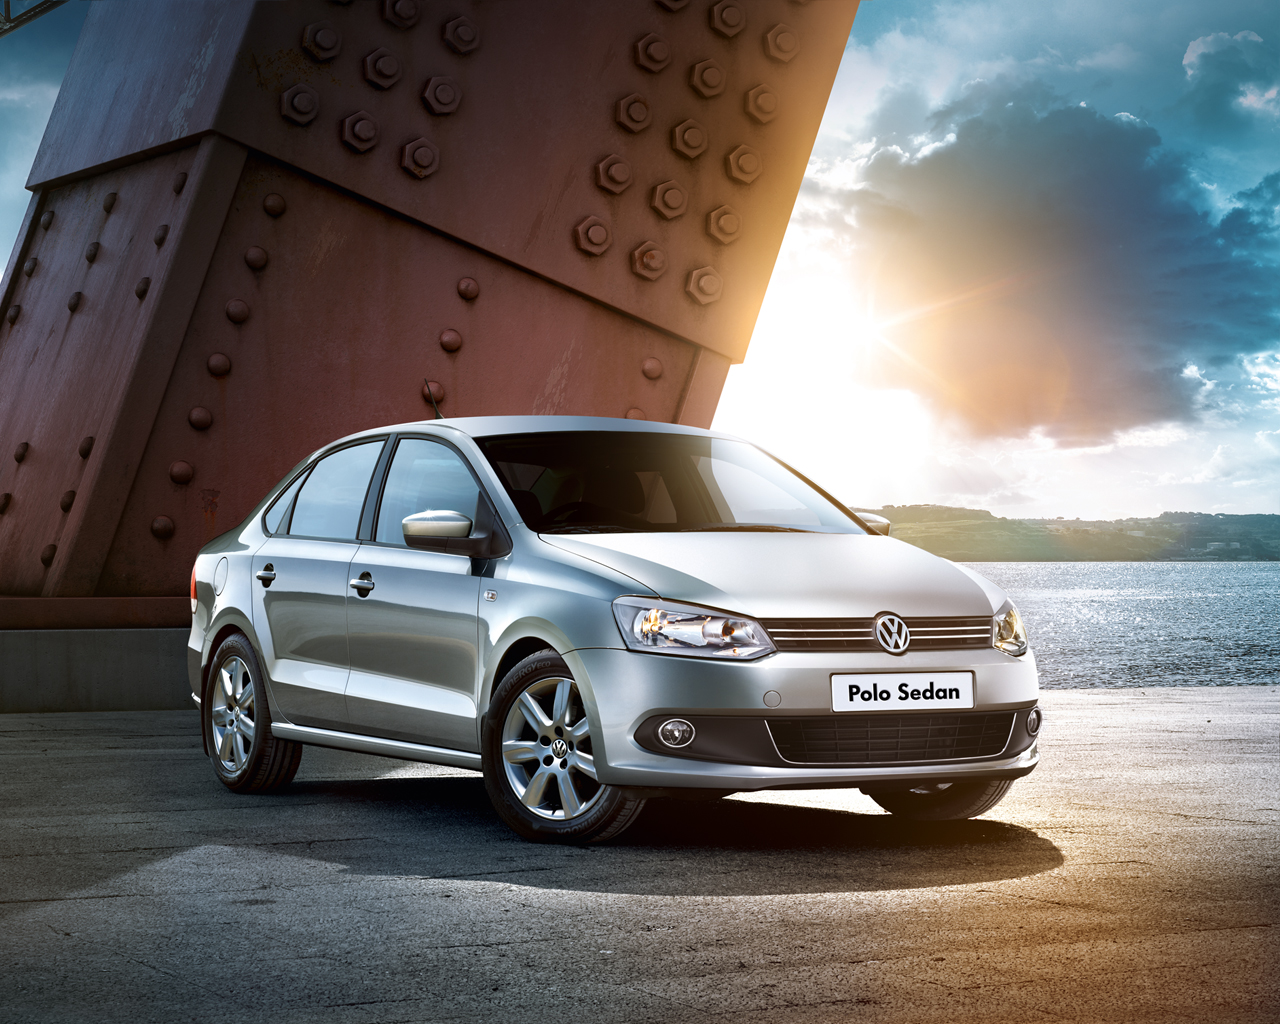 VOLKSWAGEN Polo Sedan specs & photos - 2010, 2011, 2012, 2013, 2014, 2015, 2016, 2017, 2018 ...